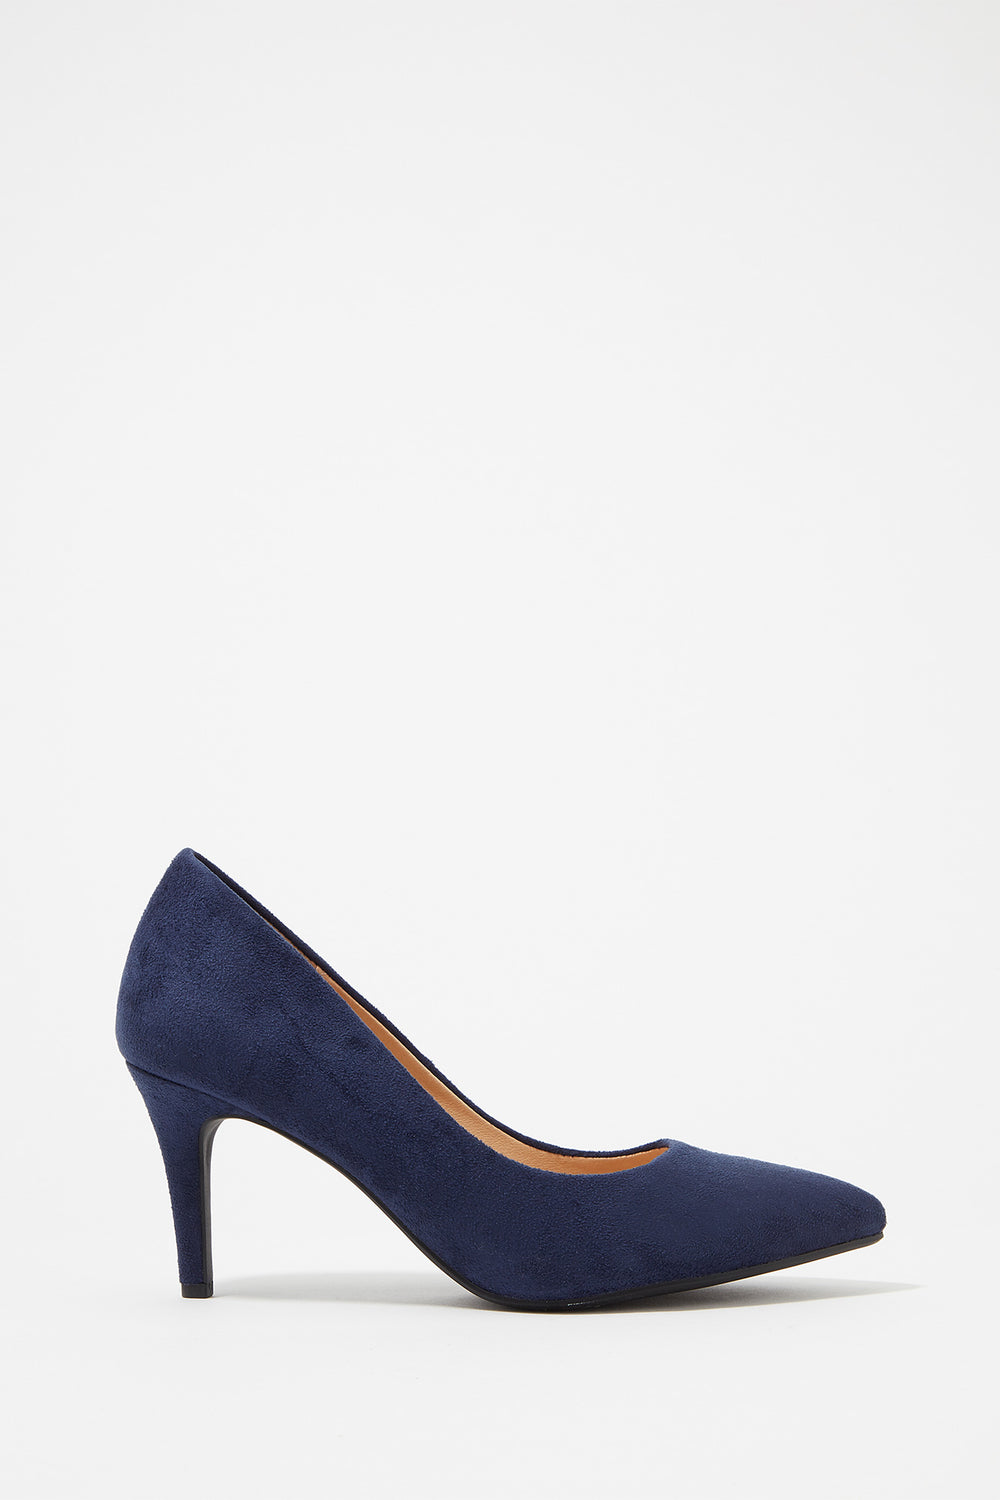 Pointed Toe Pump Heel Navy